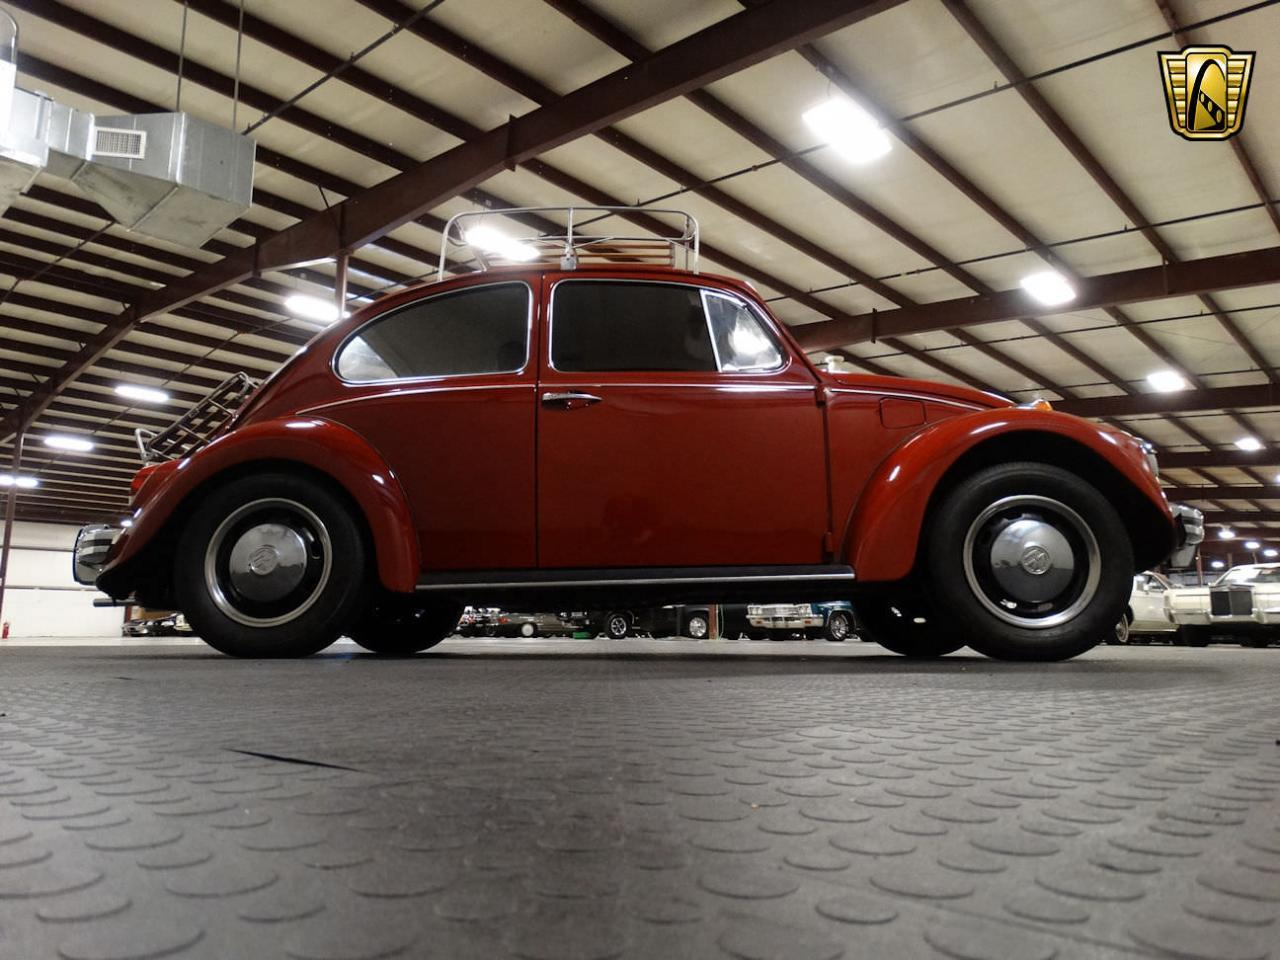 Large Picture of '68 Volkswagen Beetle located in Indiana - $10,995.00 Offered by Gateway Classic Cars - Louisville - L91P